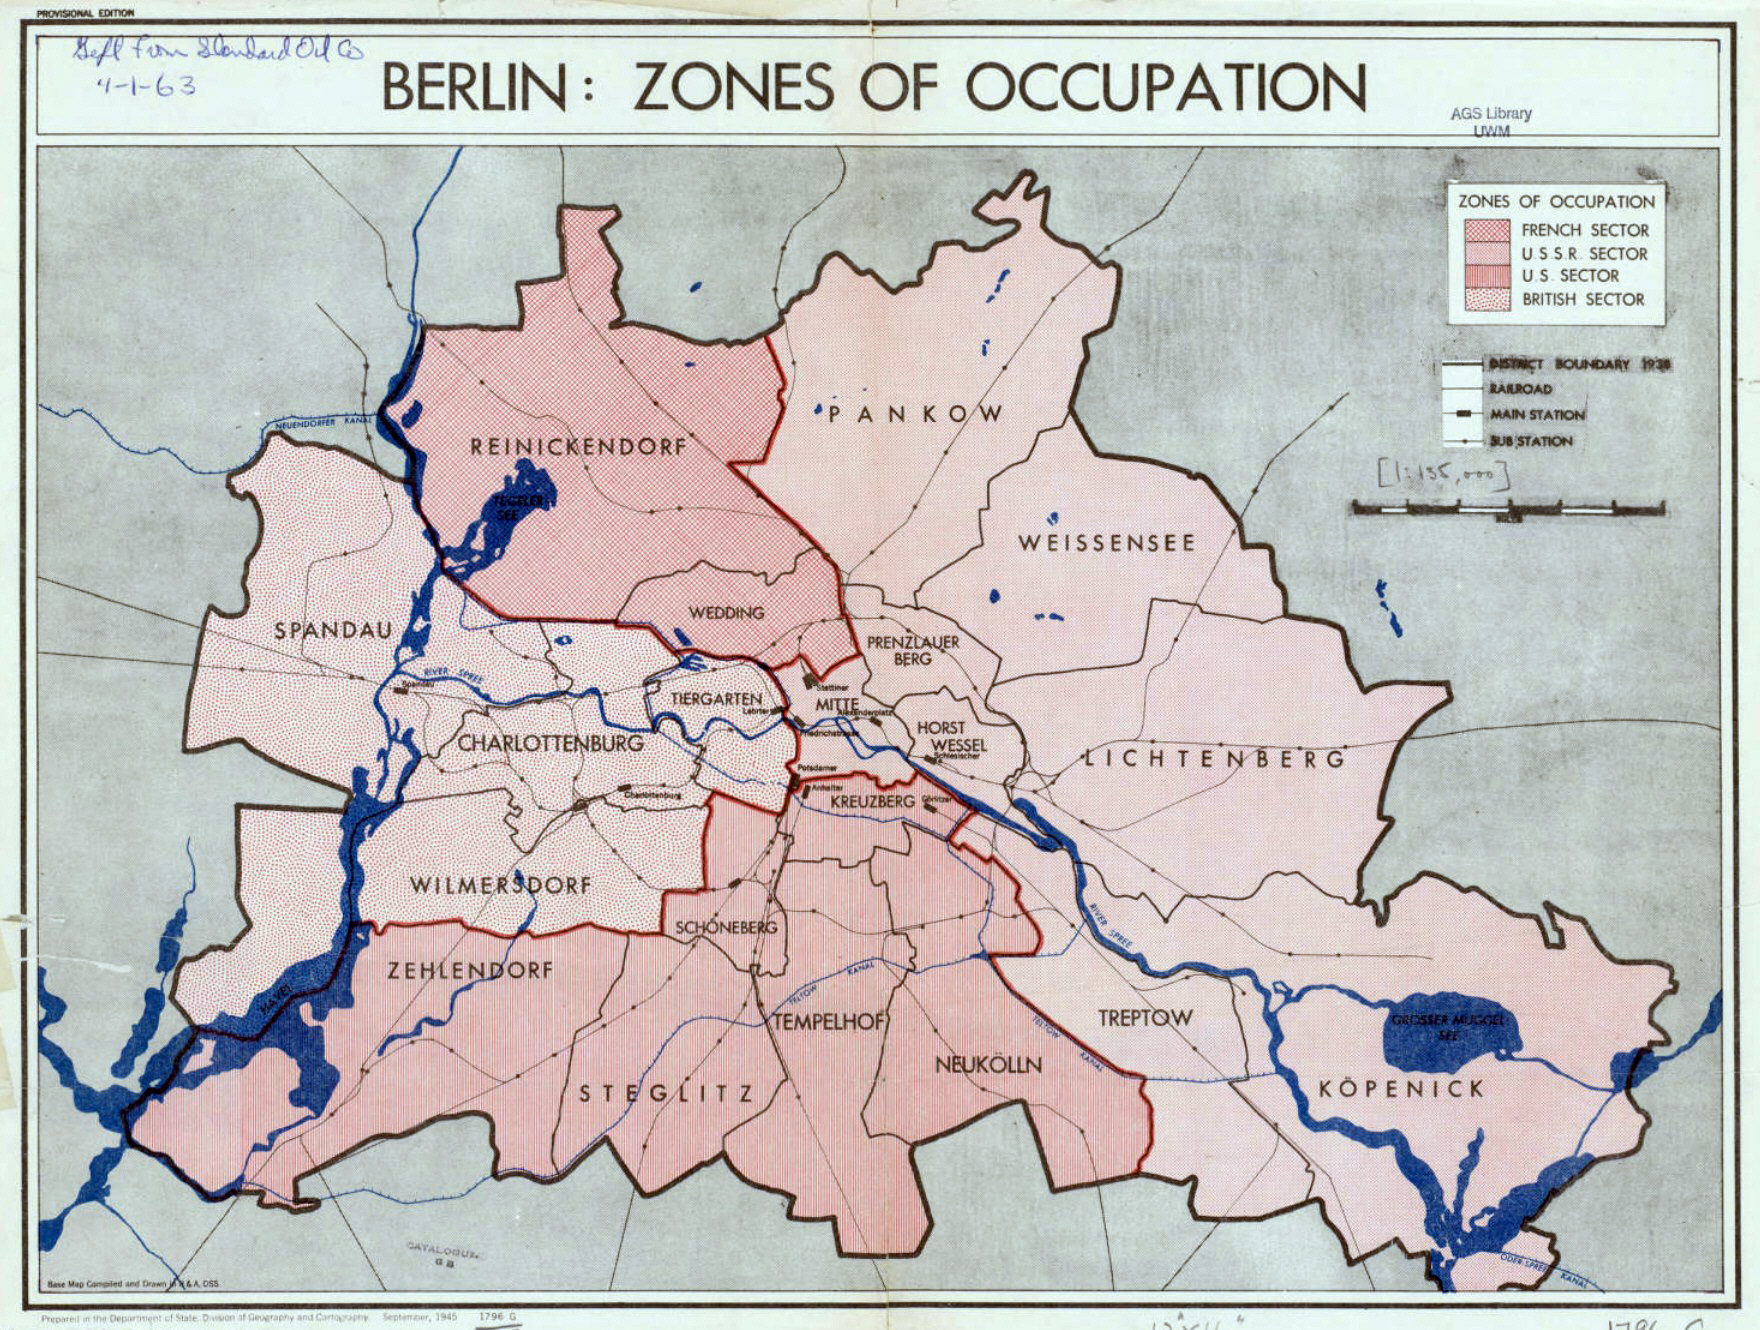 Map Of Germany Occupation Zones.Large Detailed Map Of Zones Of Occupation Of Berlin Berlin